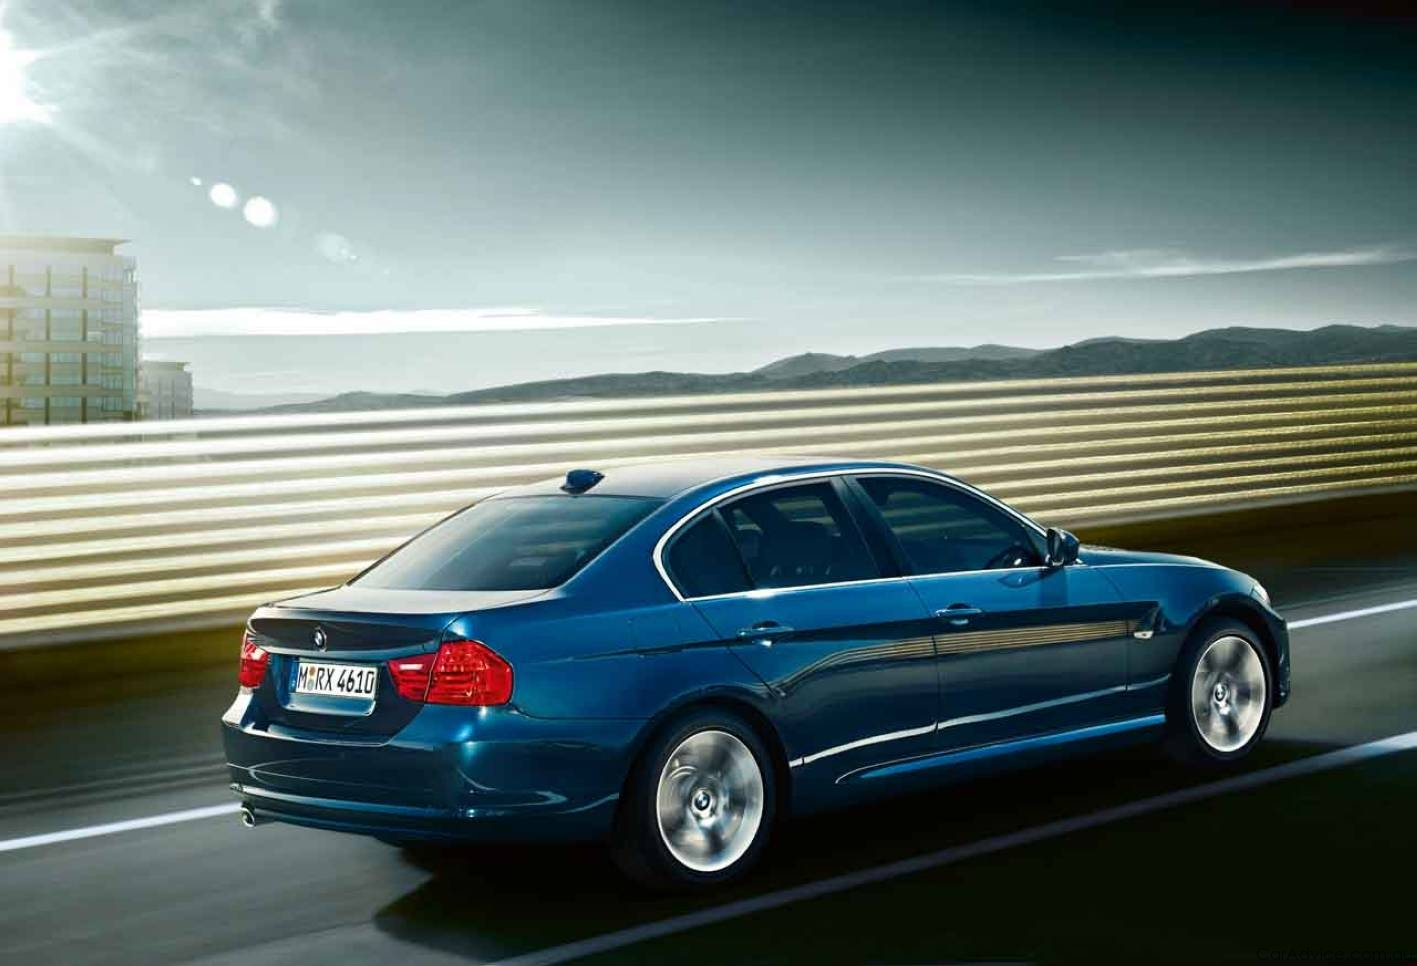 Bmw 3 Series Range Revised With Two New Model Grades